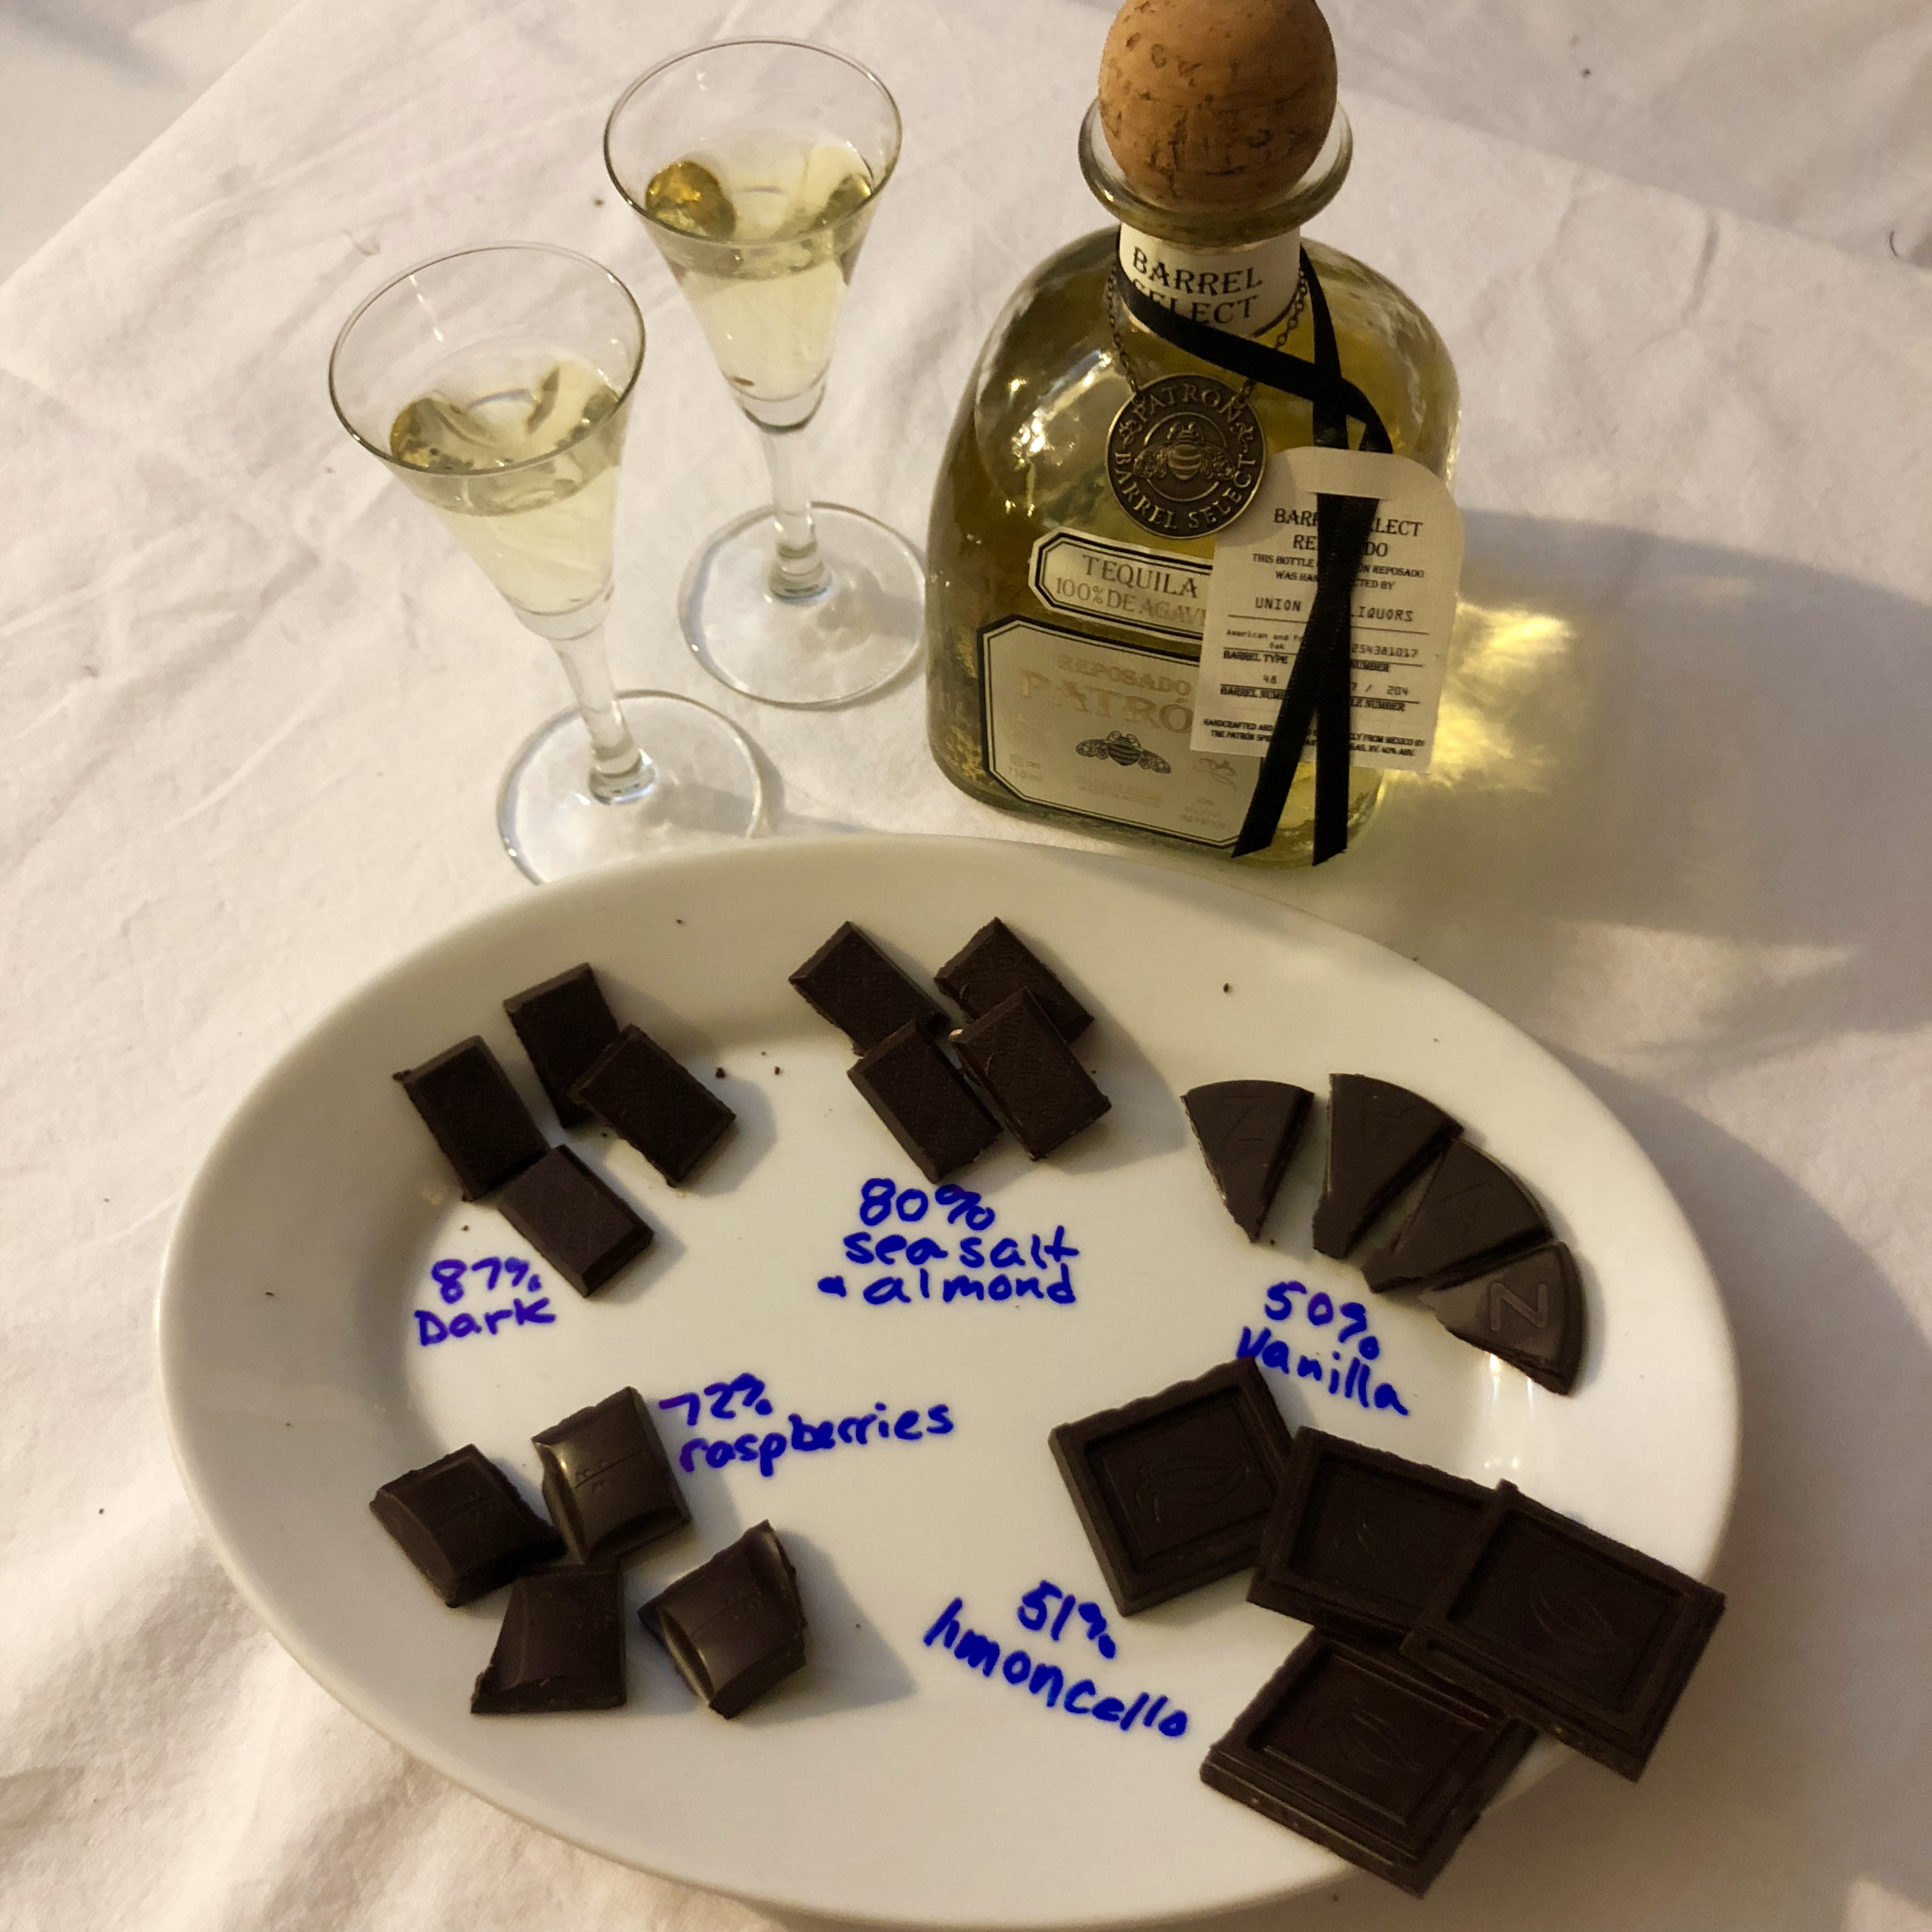 Tequila and Chocolate: An adventure in tastings